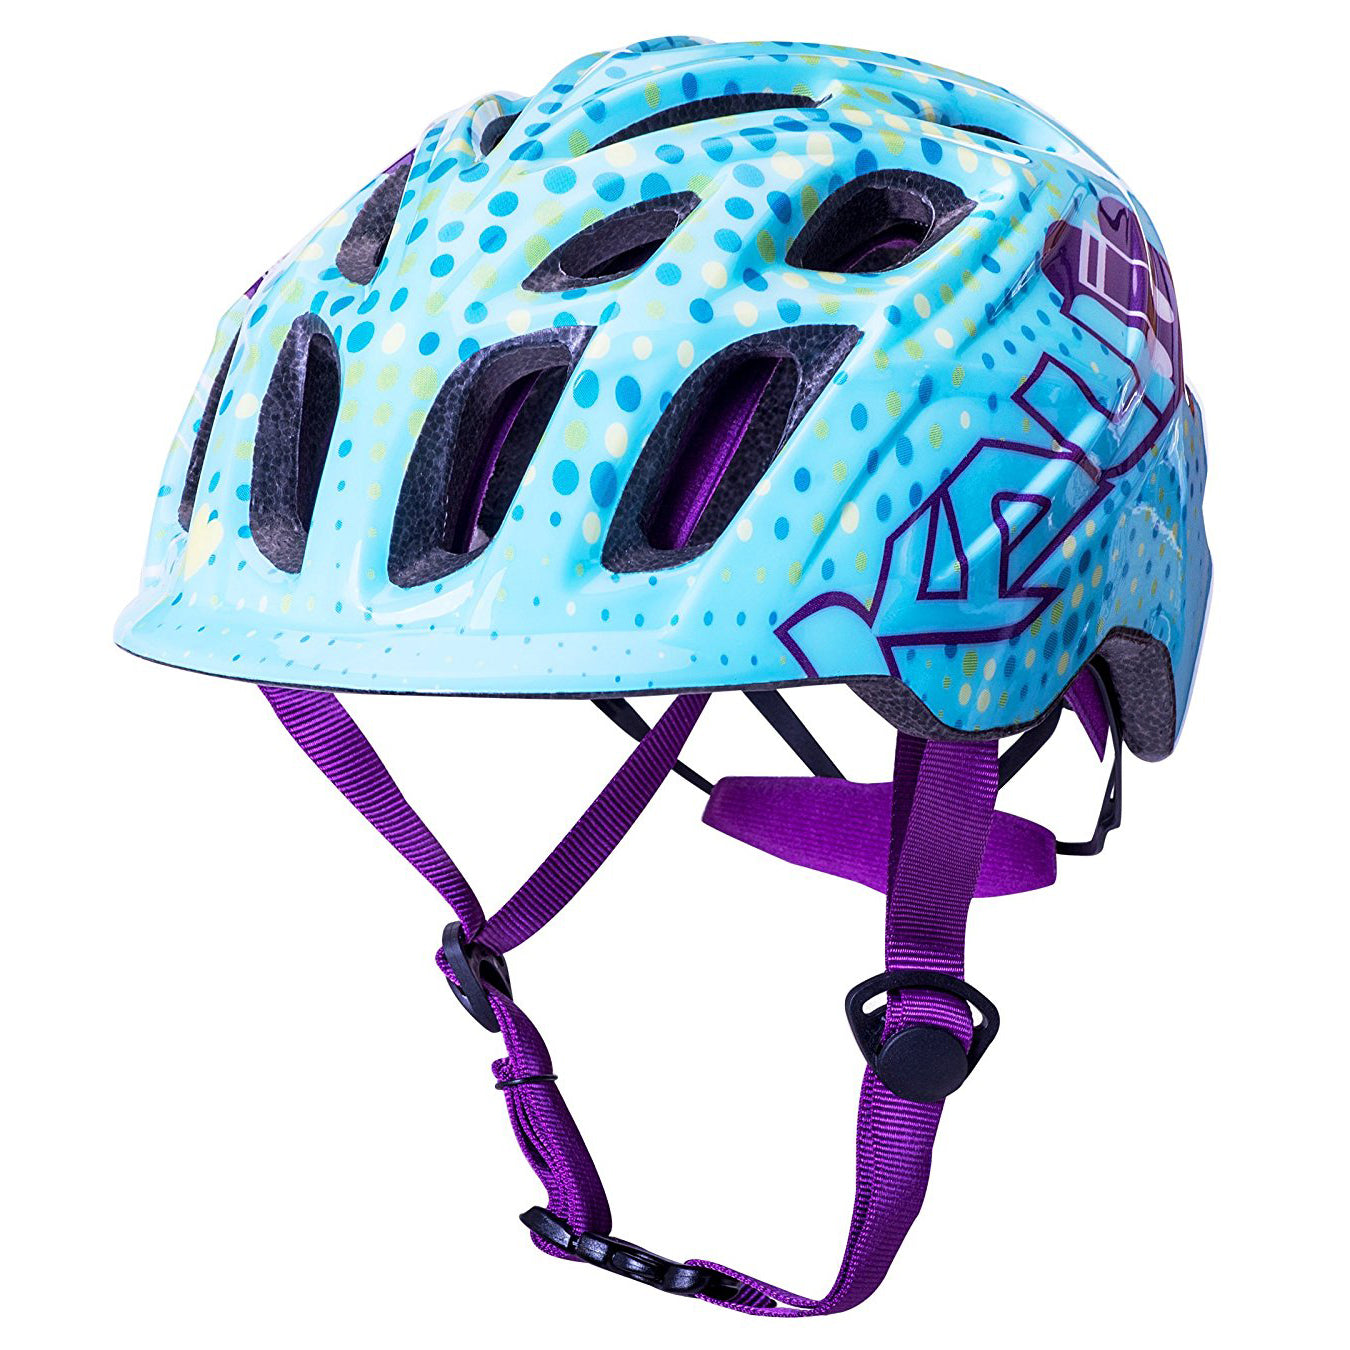 Kali Protectives Chakra Child Helmet:  MELODY BLUE/PURPLE One Size